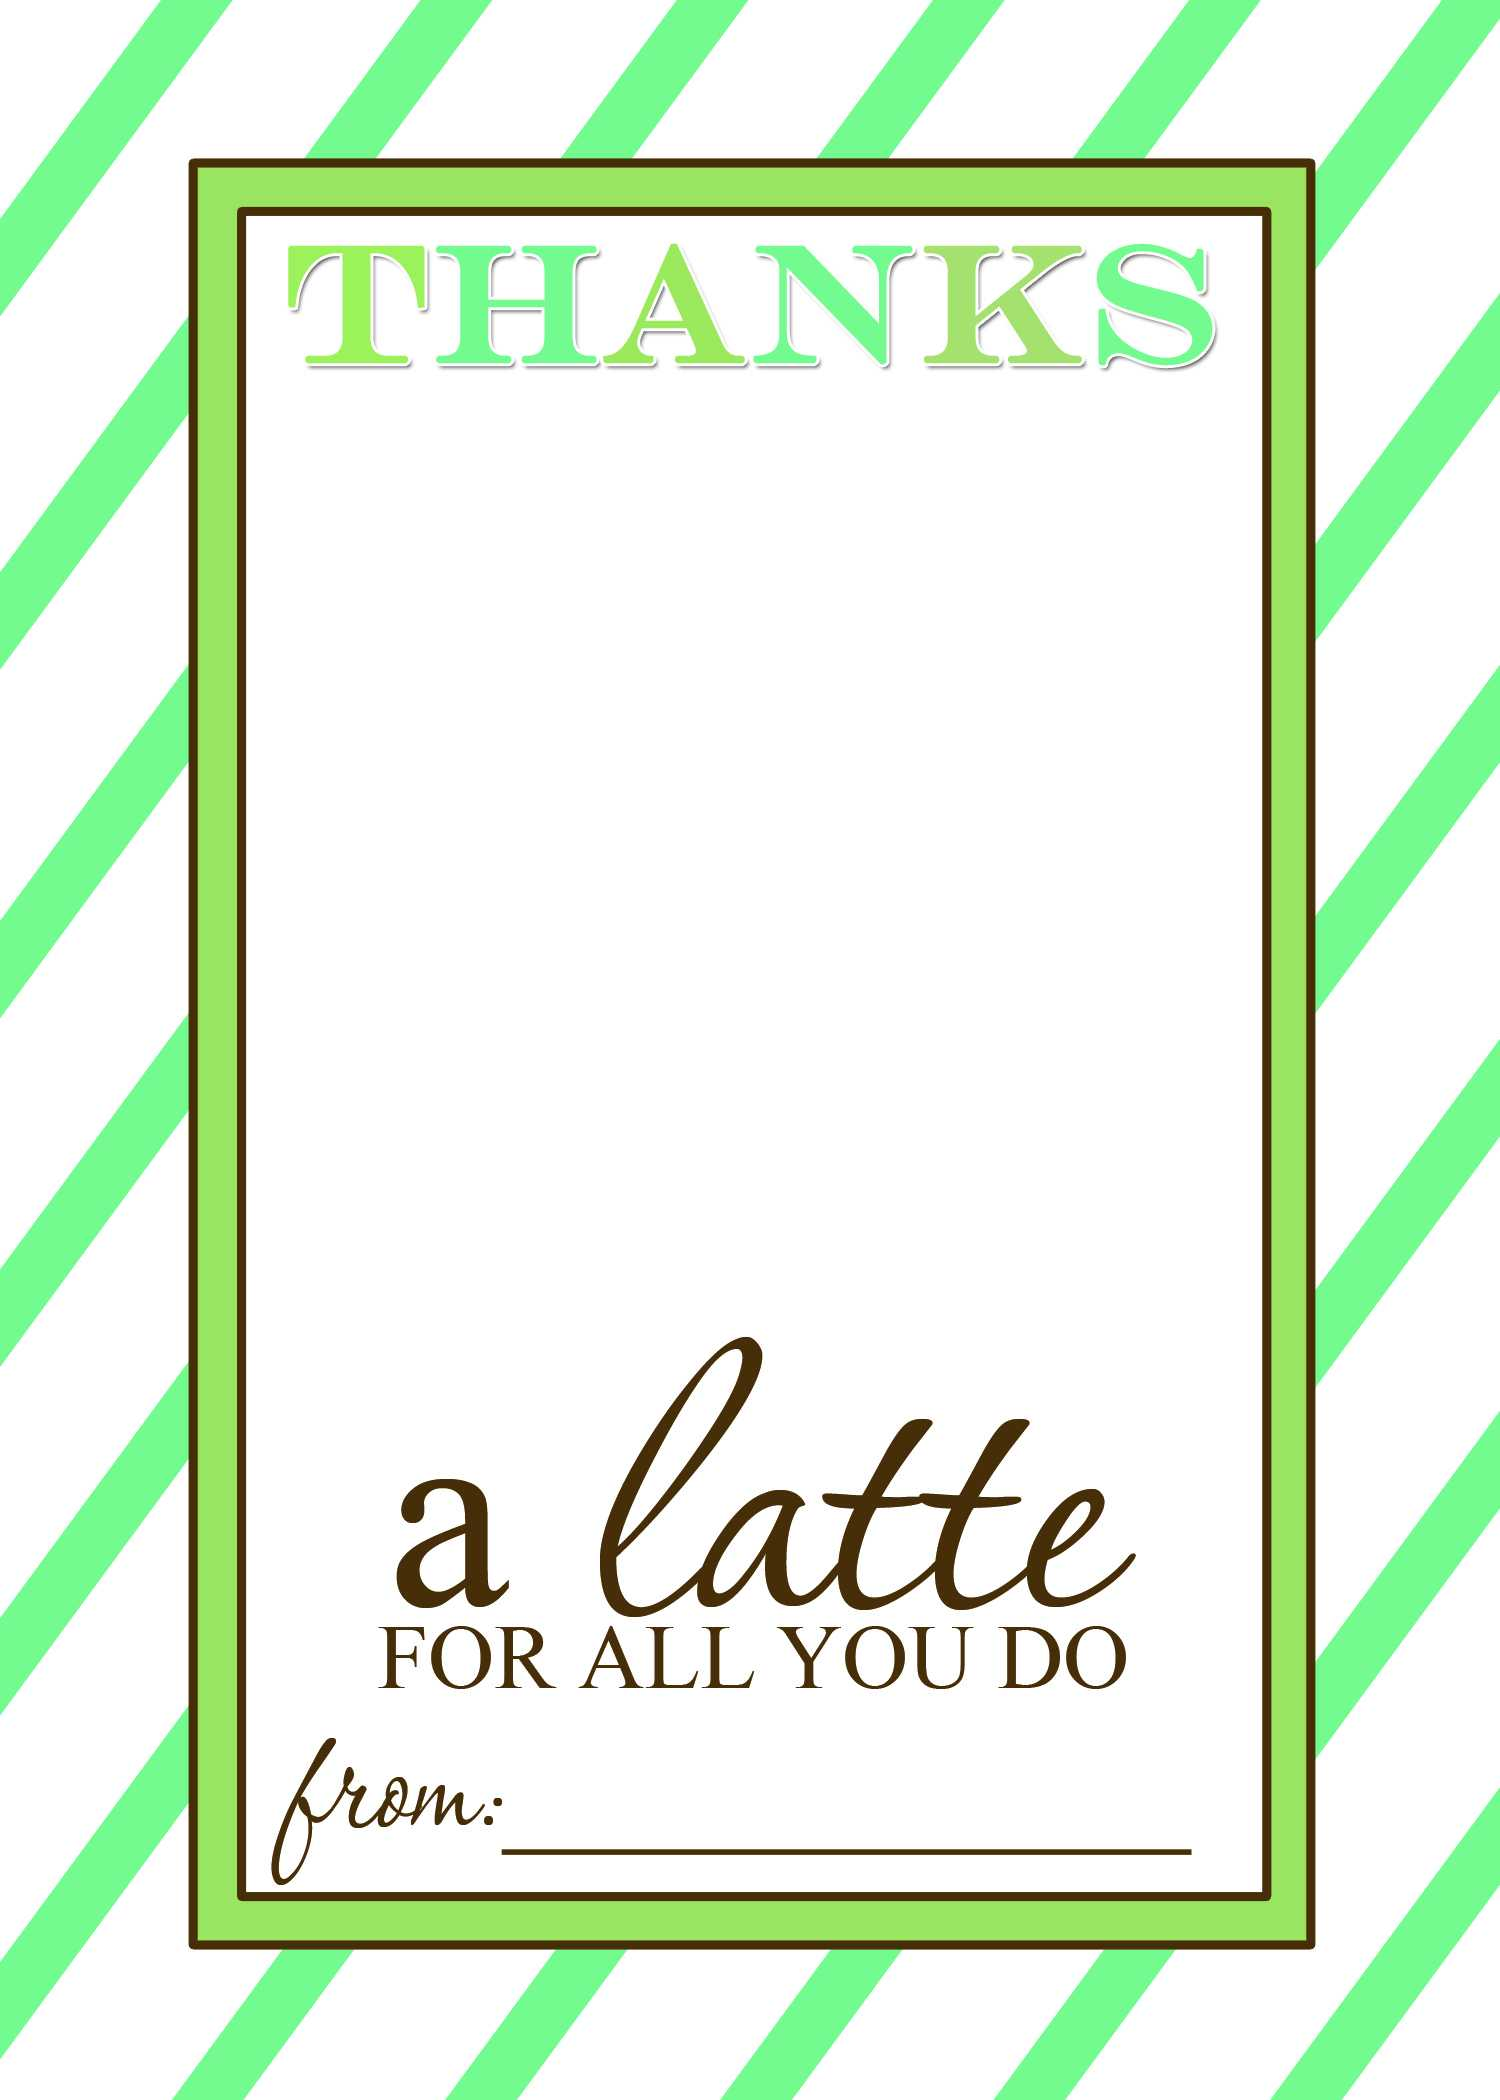 That's Country Living With Regard To Thanks A Latte Card Template